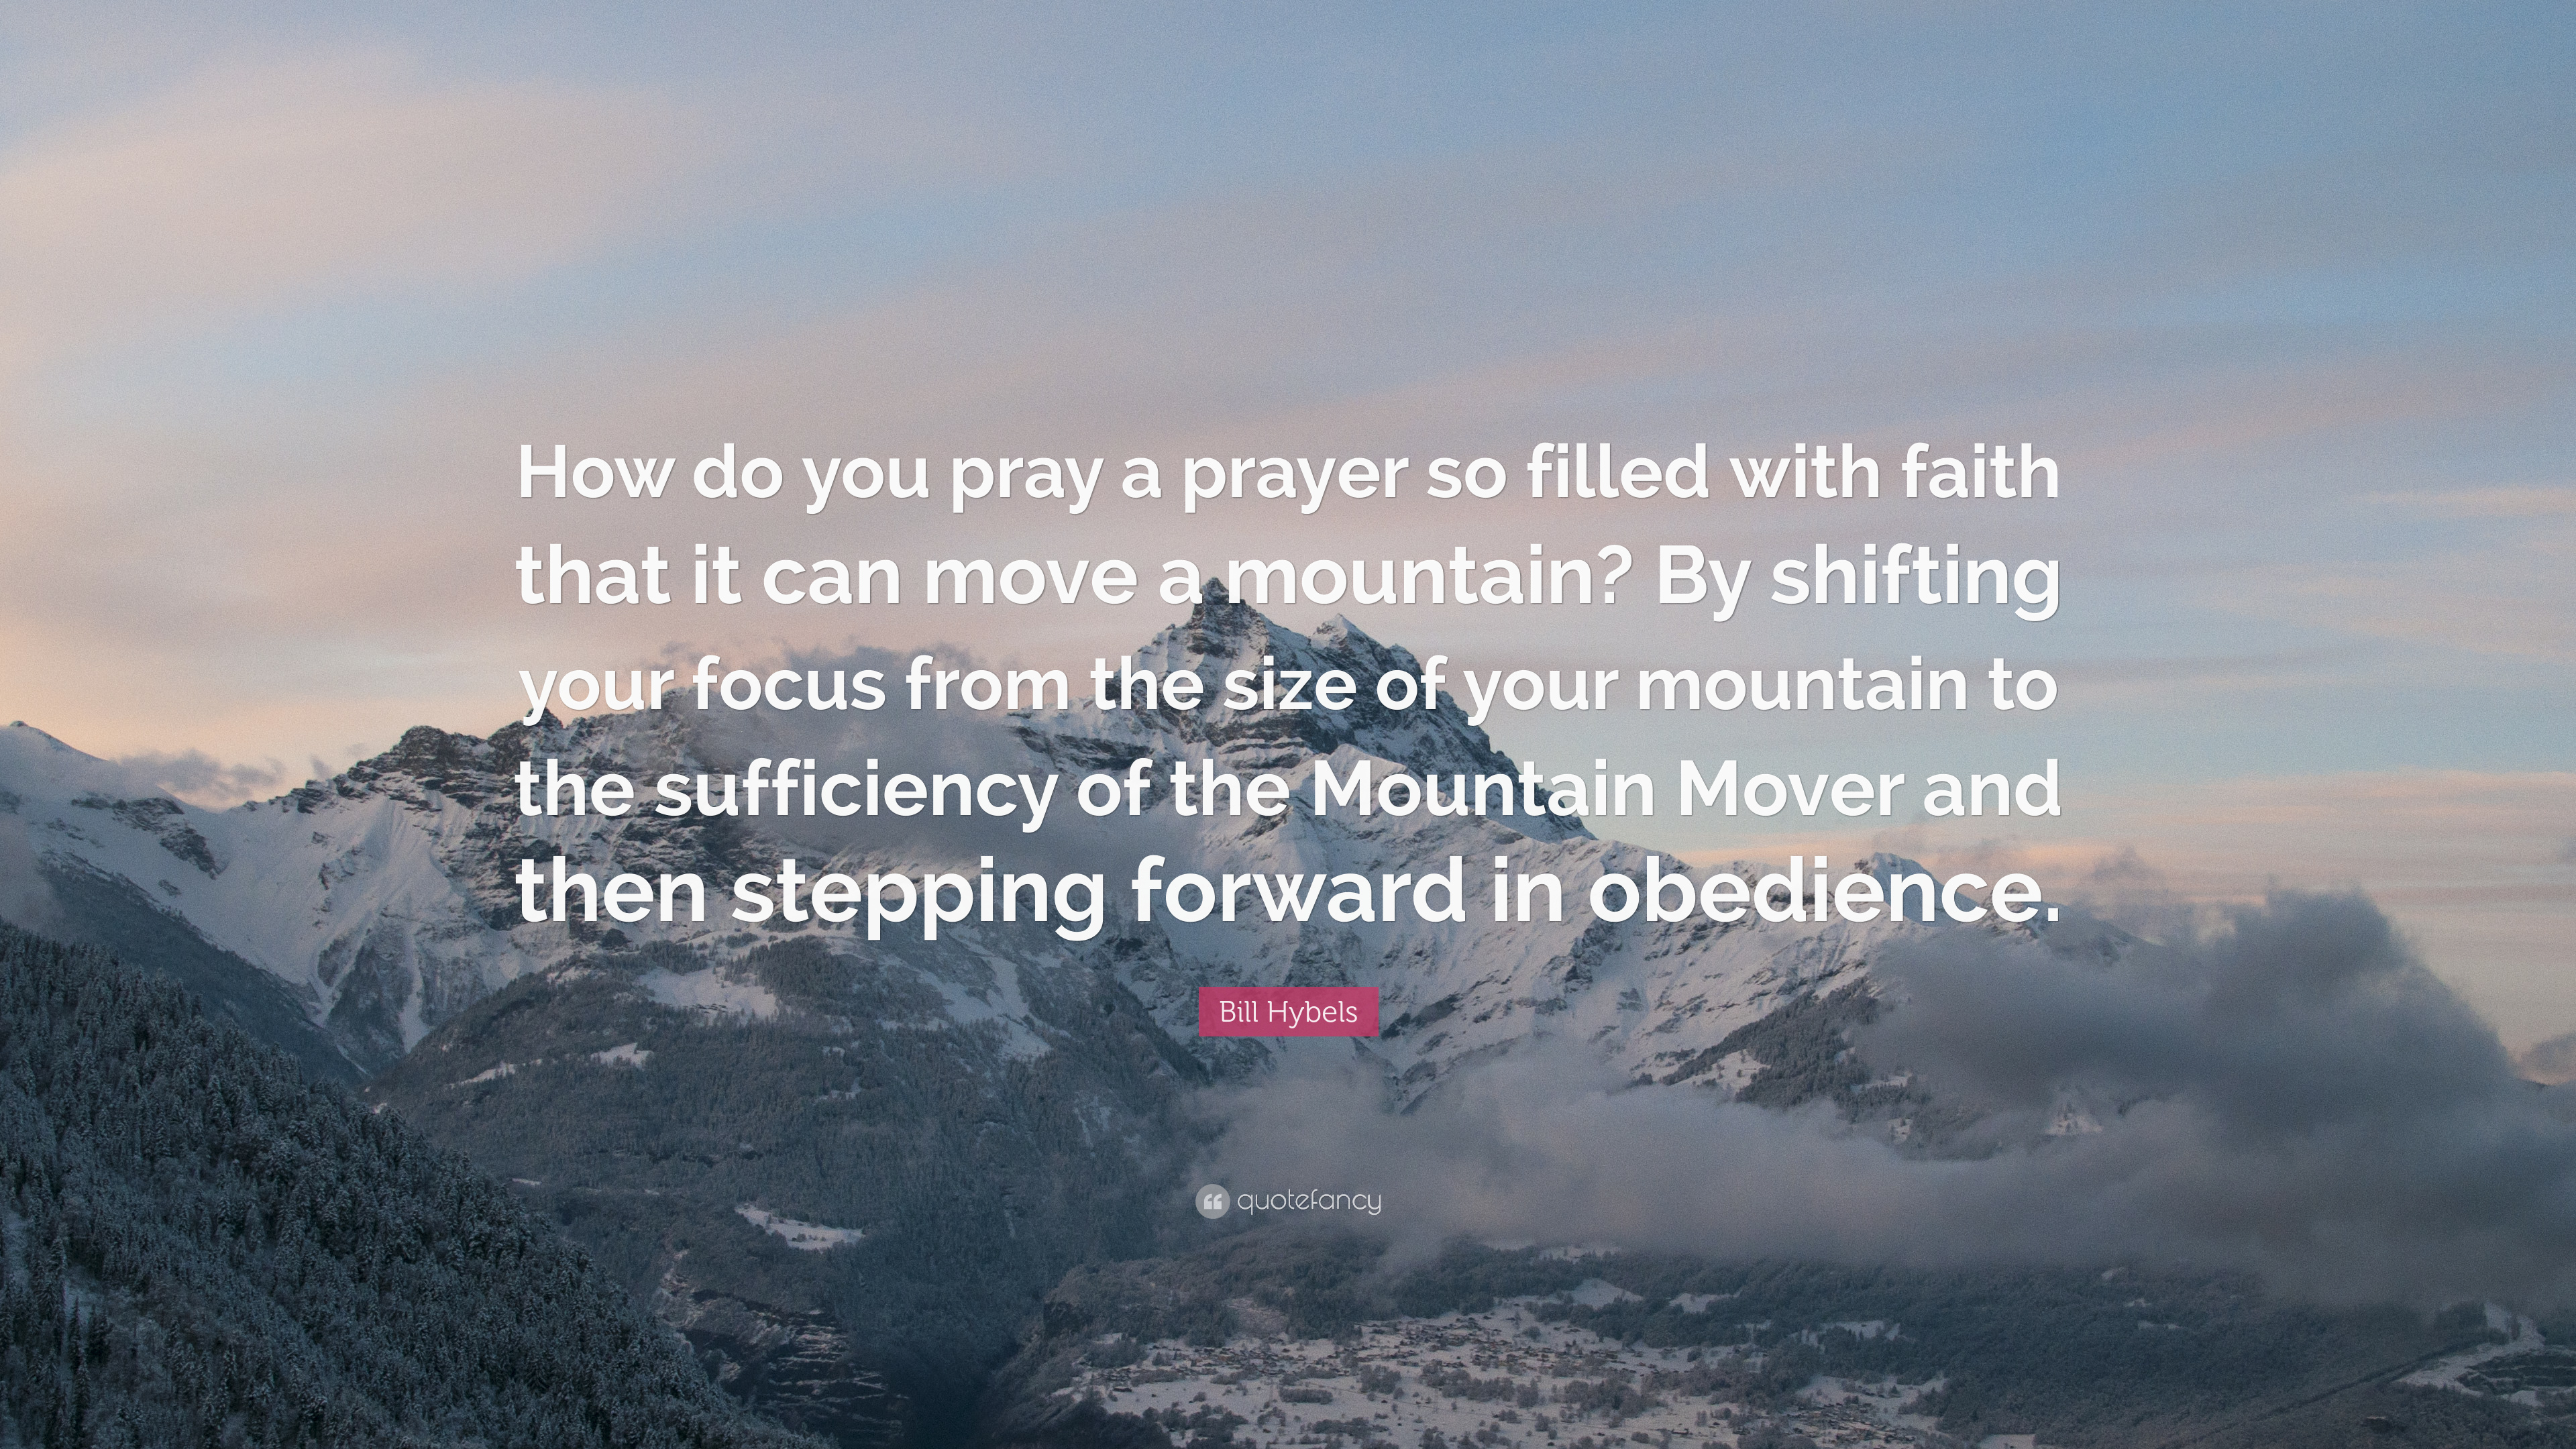 Bill Hybels Quote: U201cHow Do You Pray A Prayer So Filled With Faith That